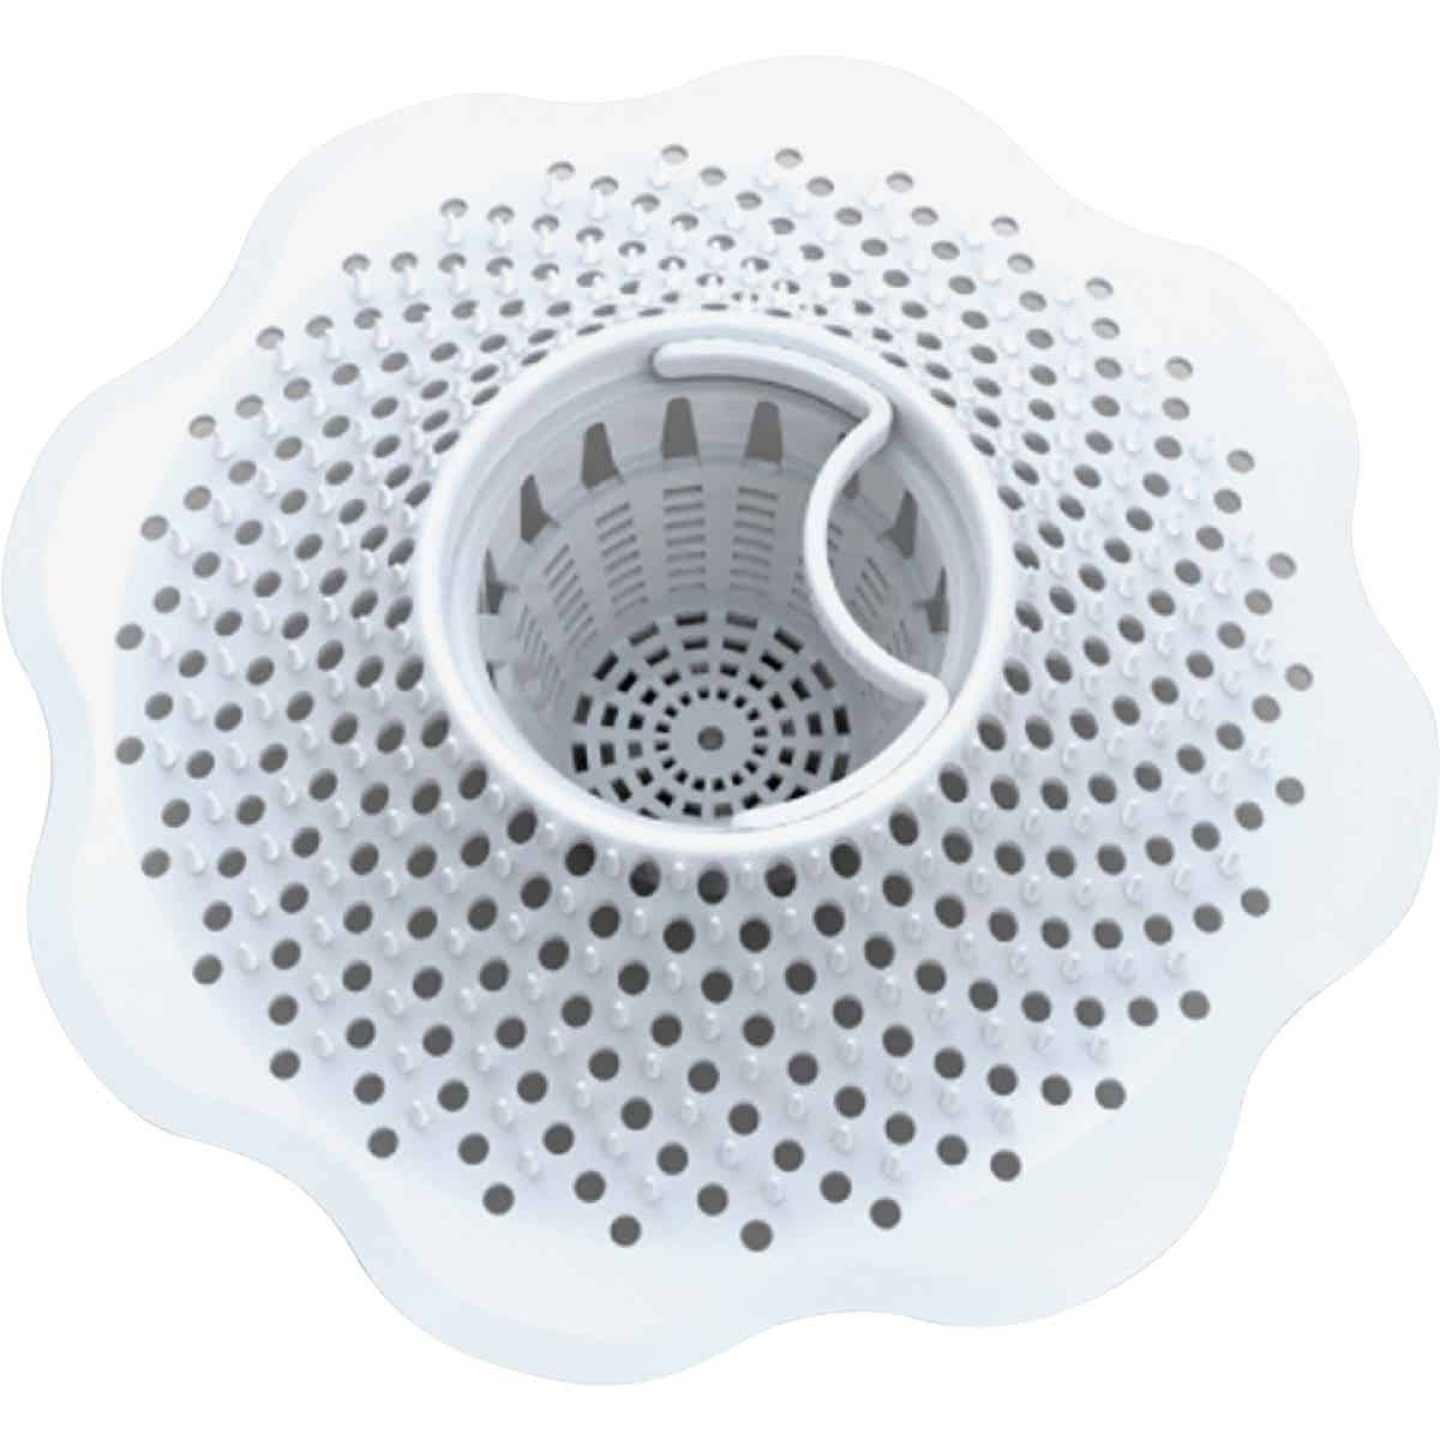 Danco Standard Size PVC Lift Out Tub Drain Strainer Image 1